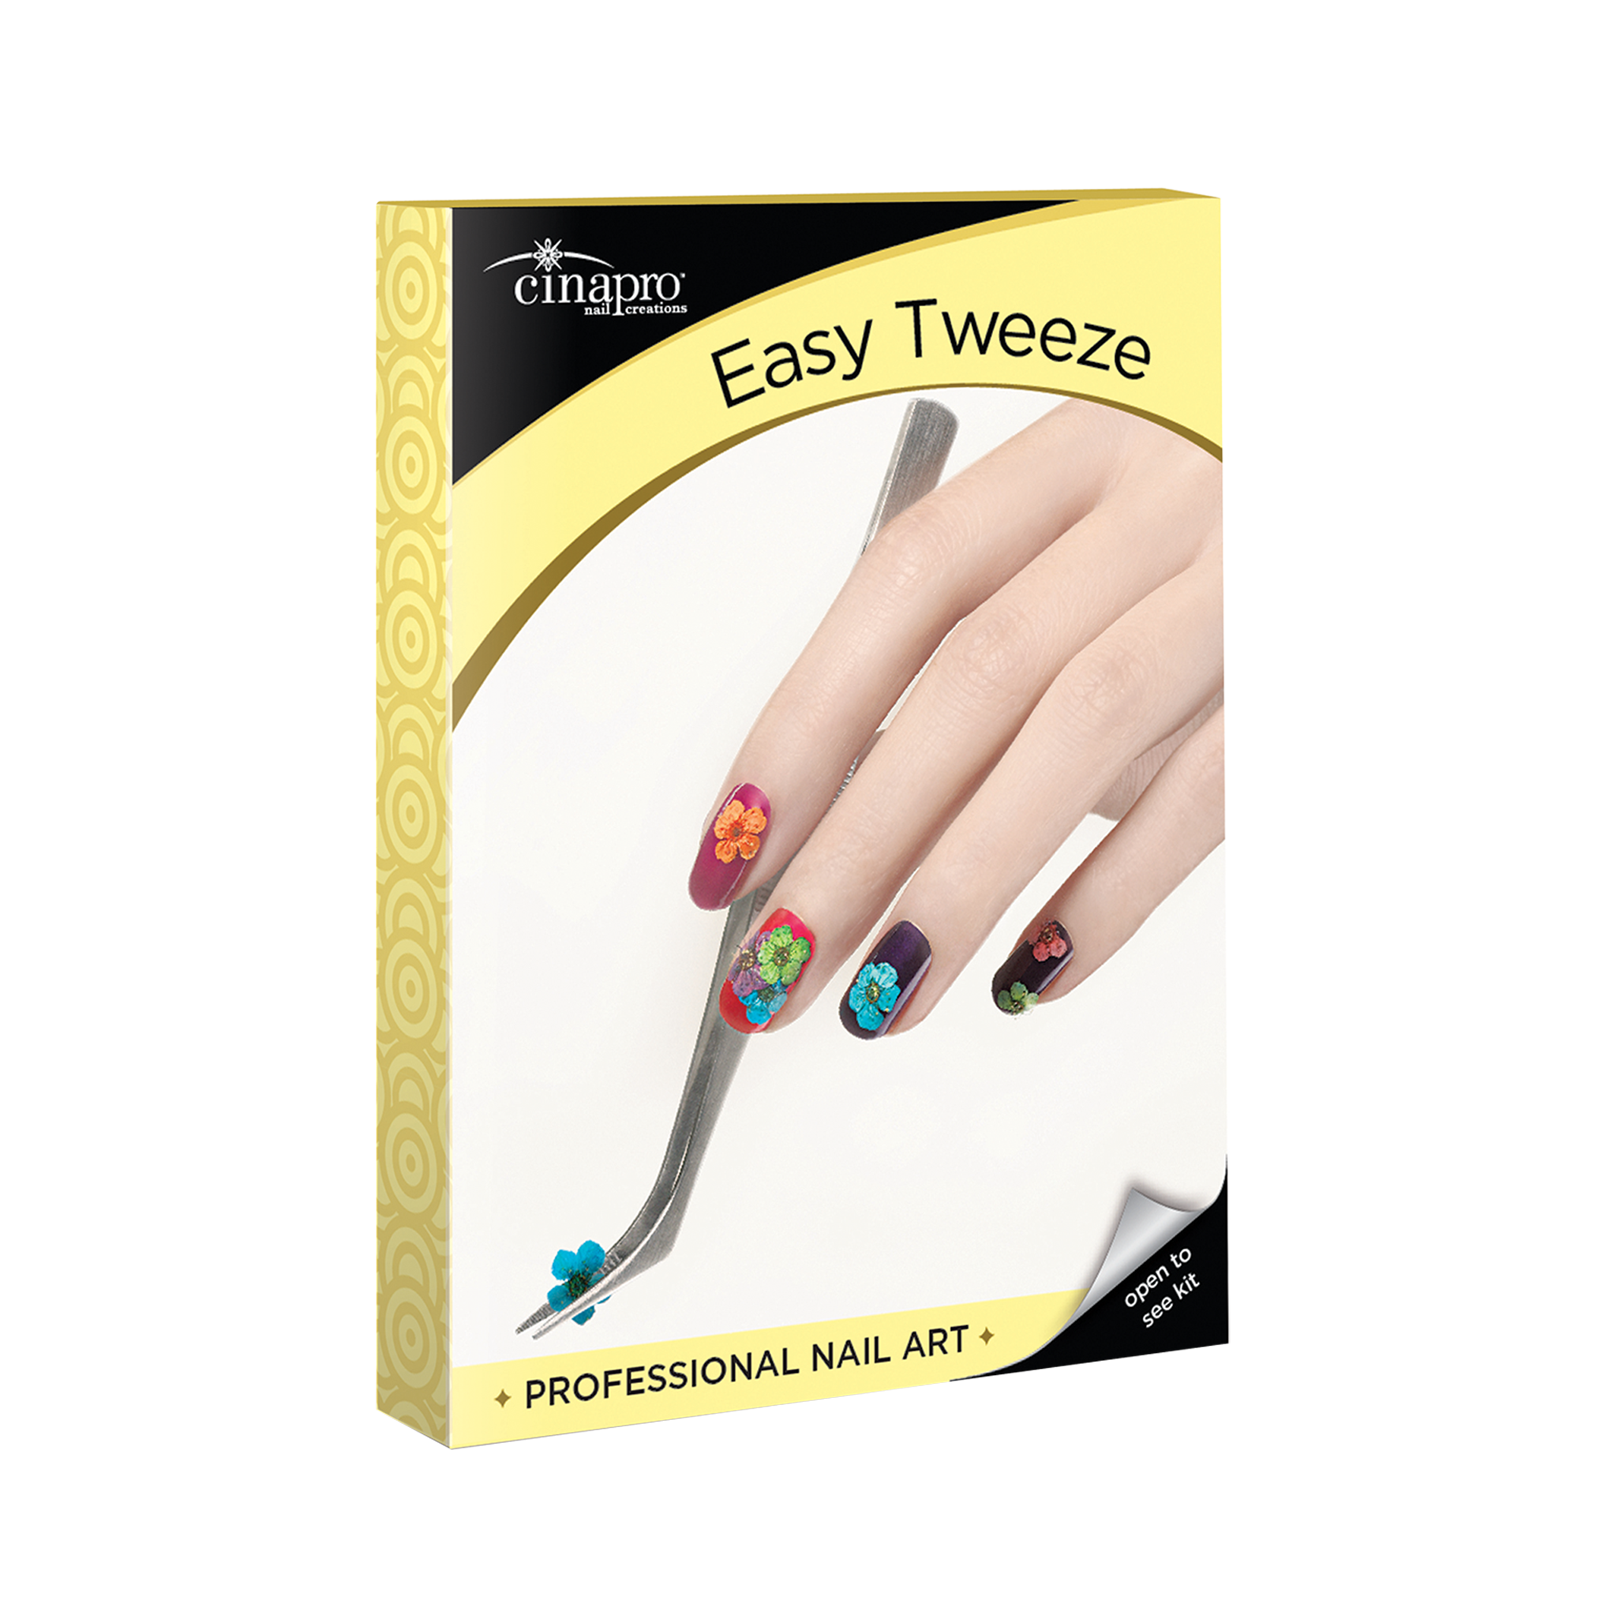 CinaPro Professional Nail Art - Easy Tweeze